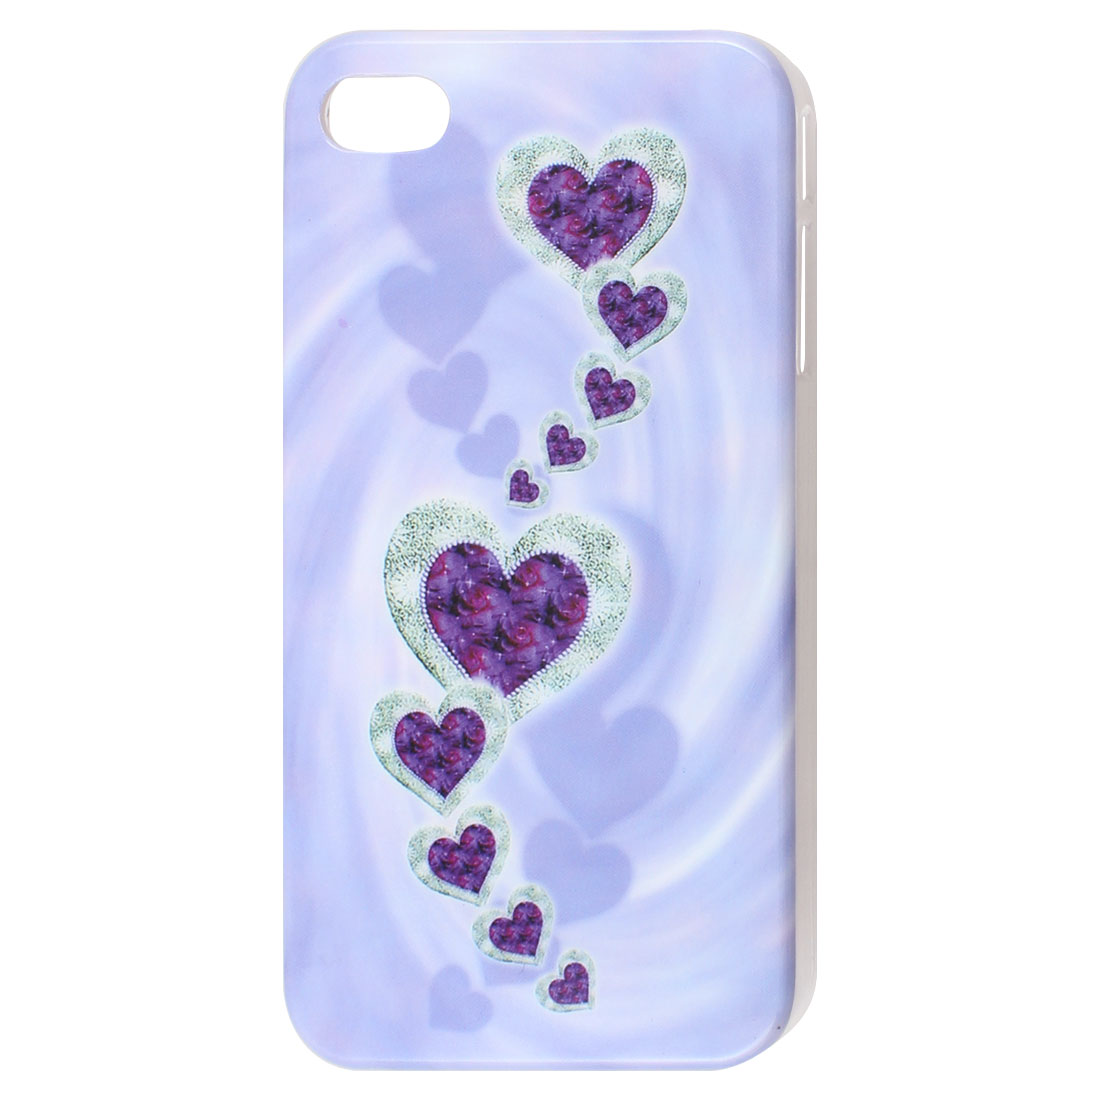 Heart Pattern Light Purple IMD Hard Back Case Cover for iPhone 4 4G 4S 4GS